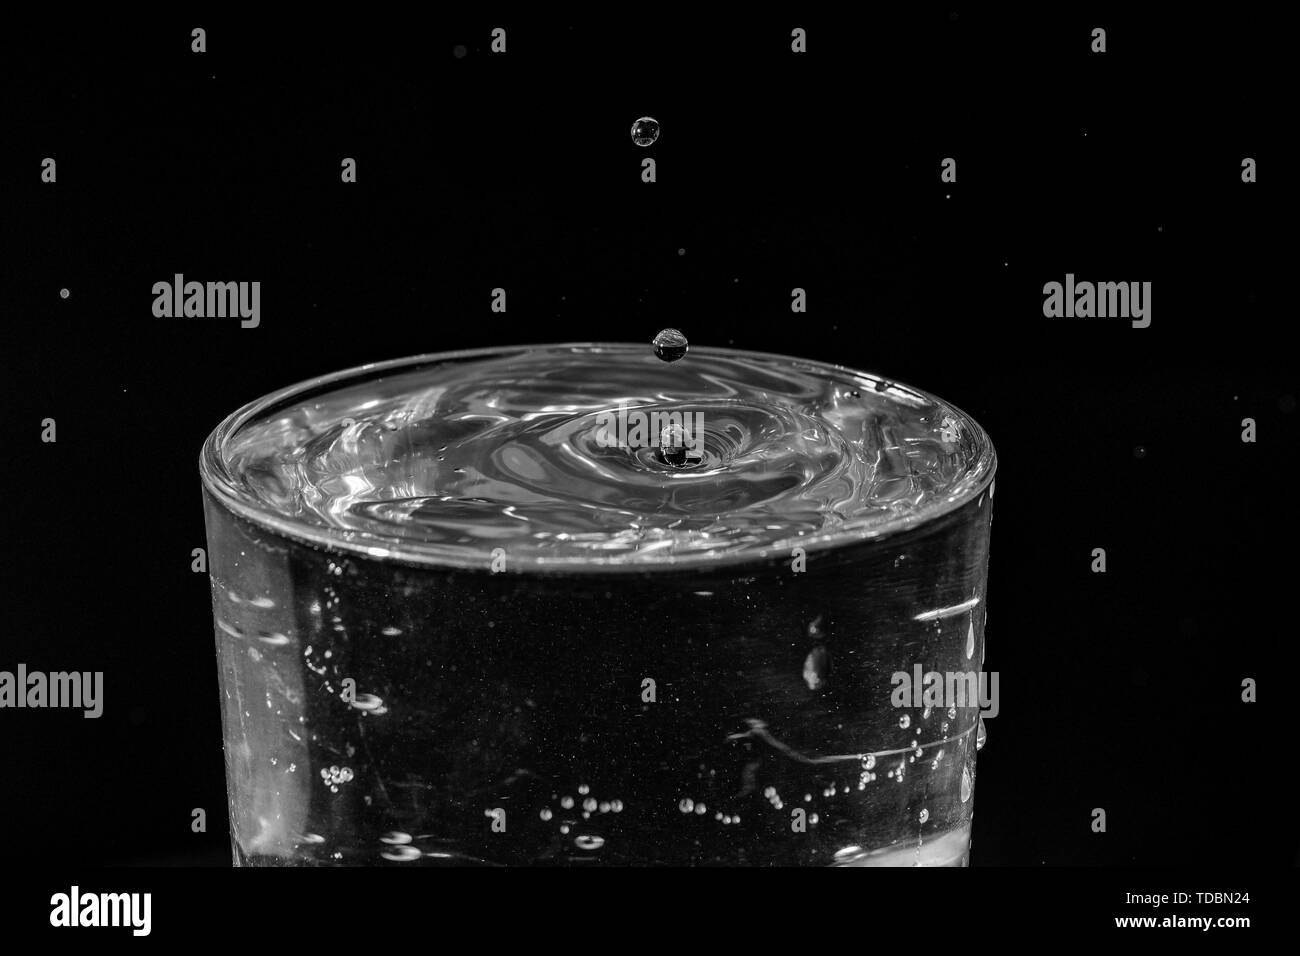 water drops splashing in the glass of water on black background - Stock Image